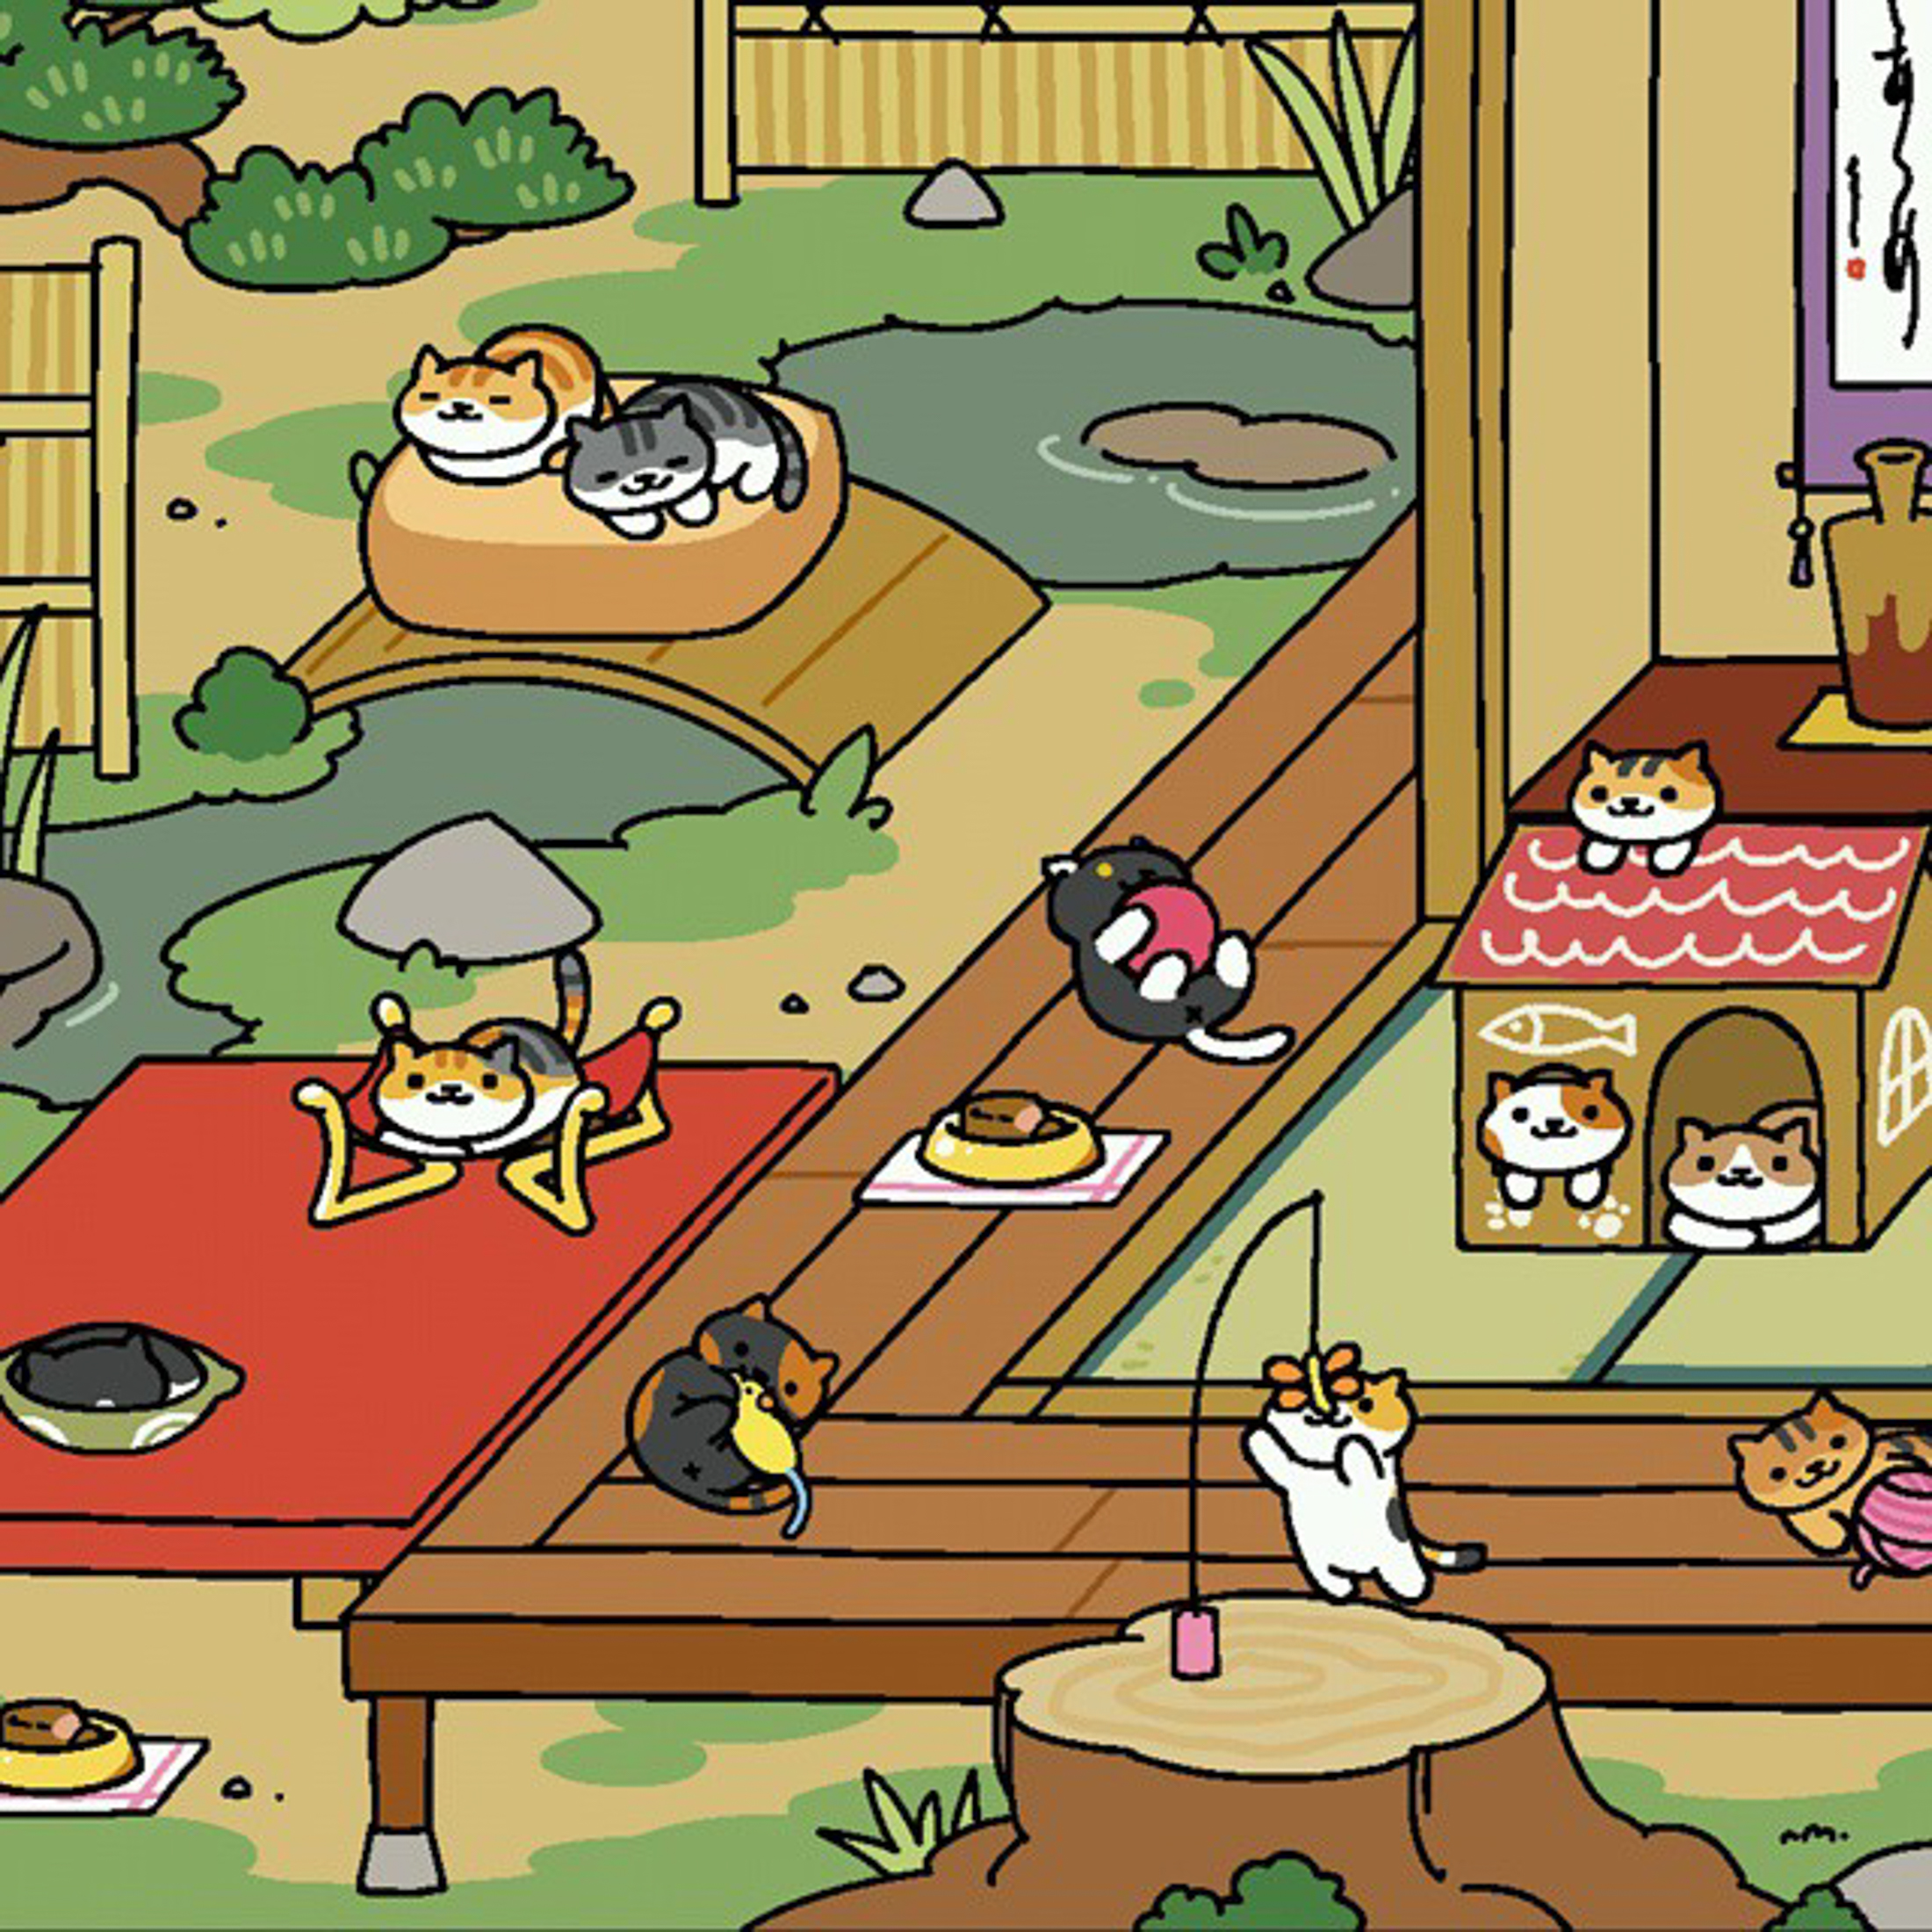 """Neko Atsume, which means """"kitty collector"""" in Japanese, is all the fun of owning cats without any of the actual work. (Jason Pettis/Flickr)"""